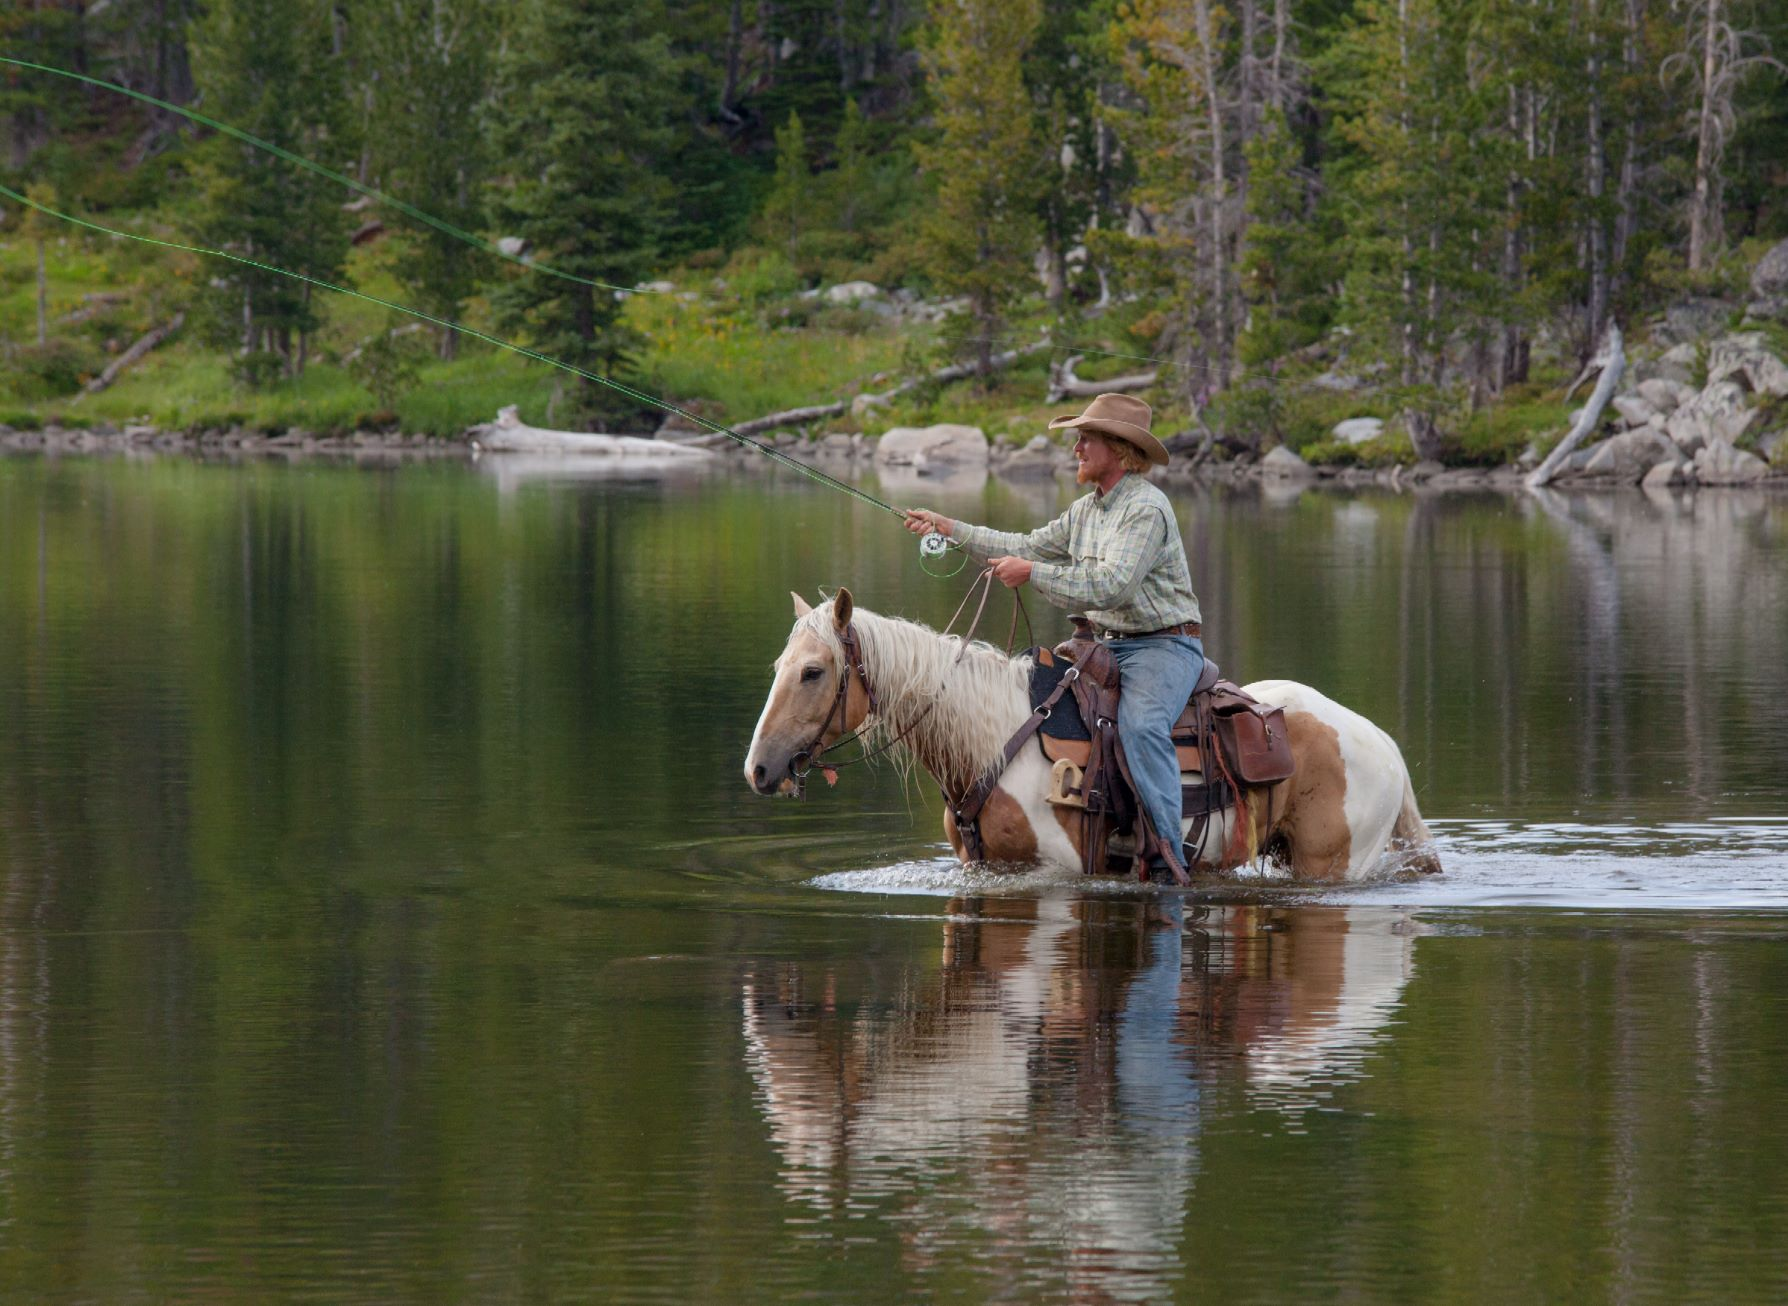 Fly-Fishing Horseback. A questionable idea. Check the blog